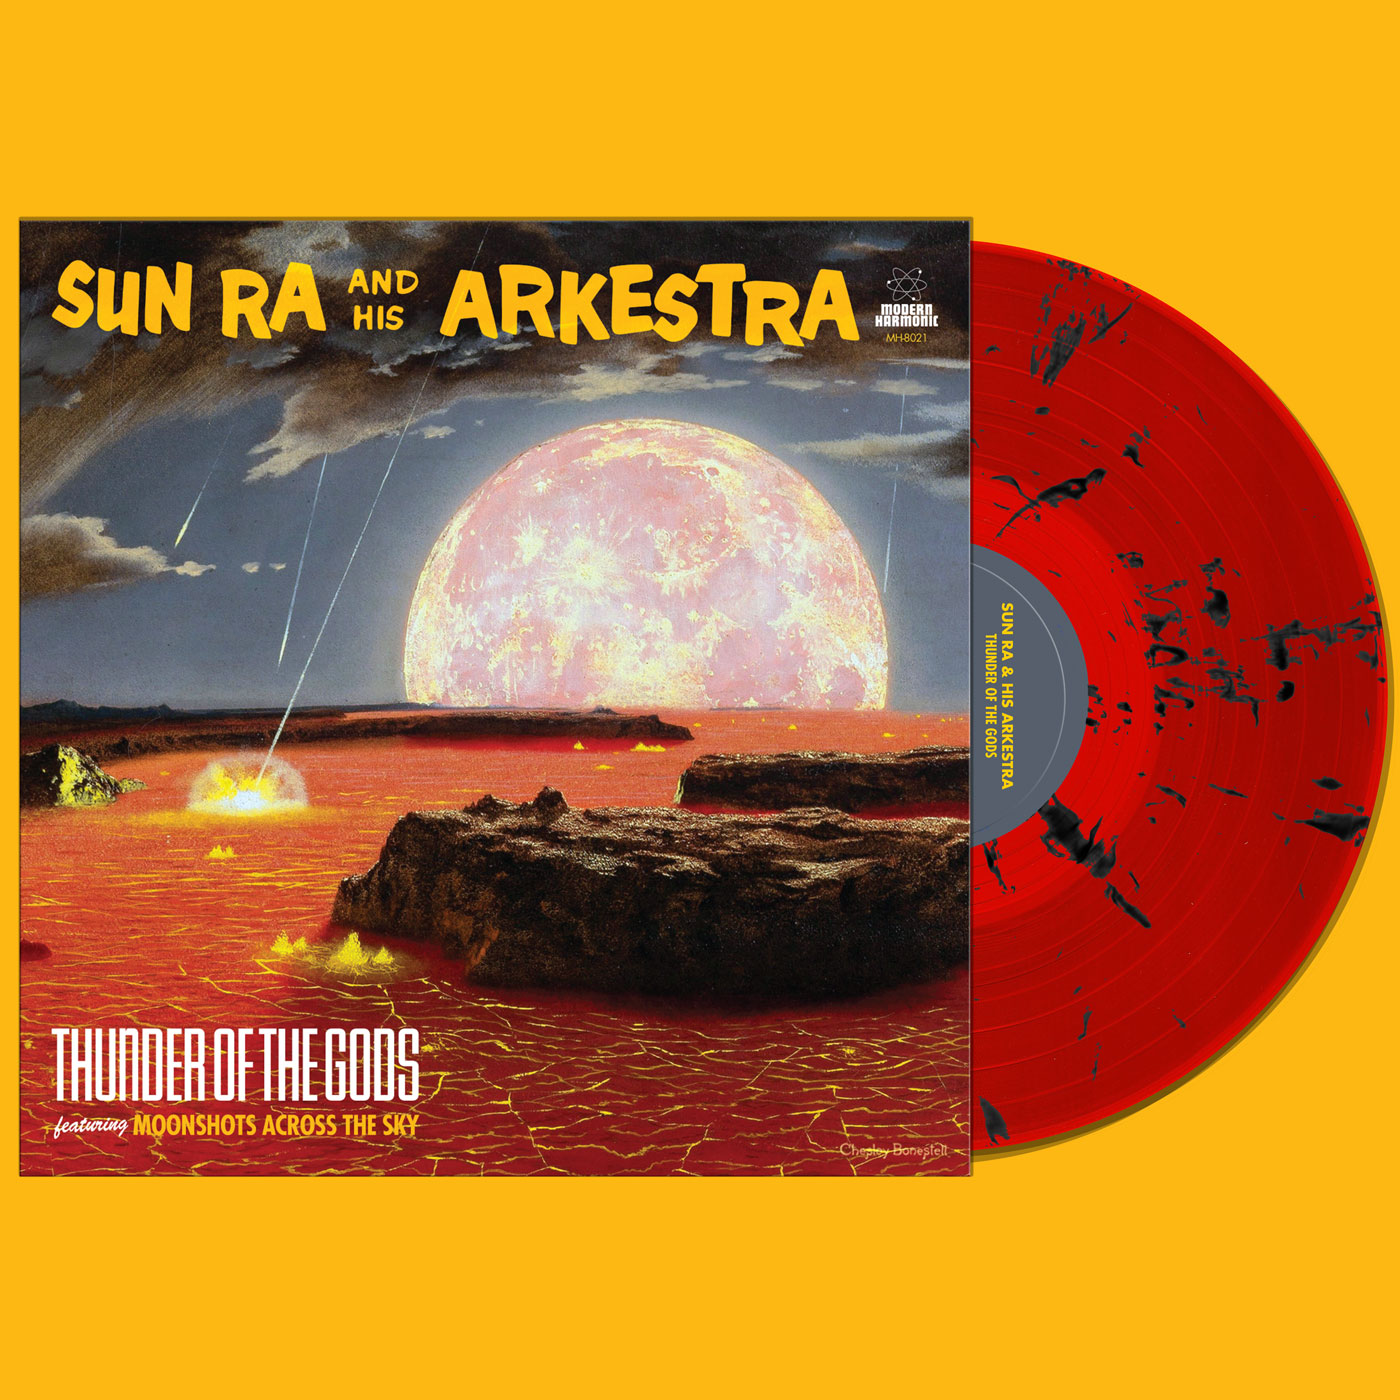 Sun Ra - Thunder Of The Gods - LP